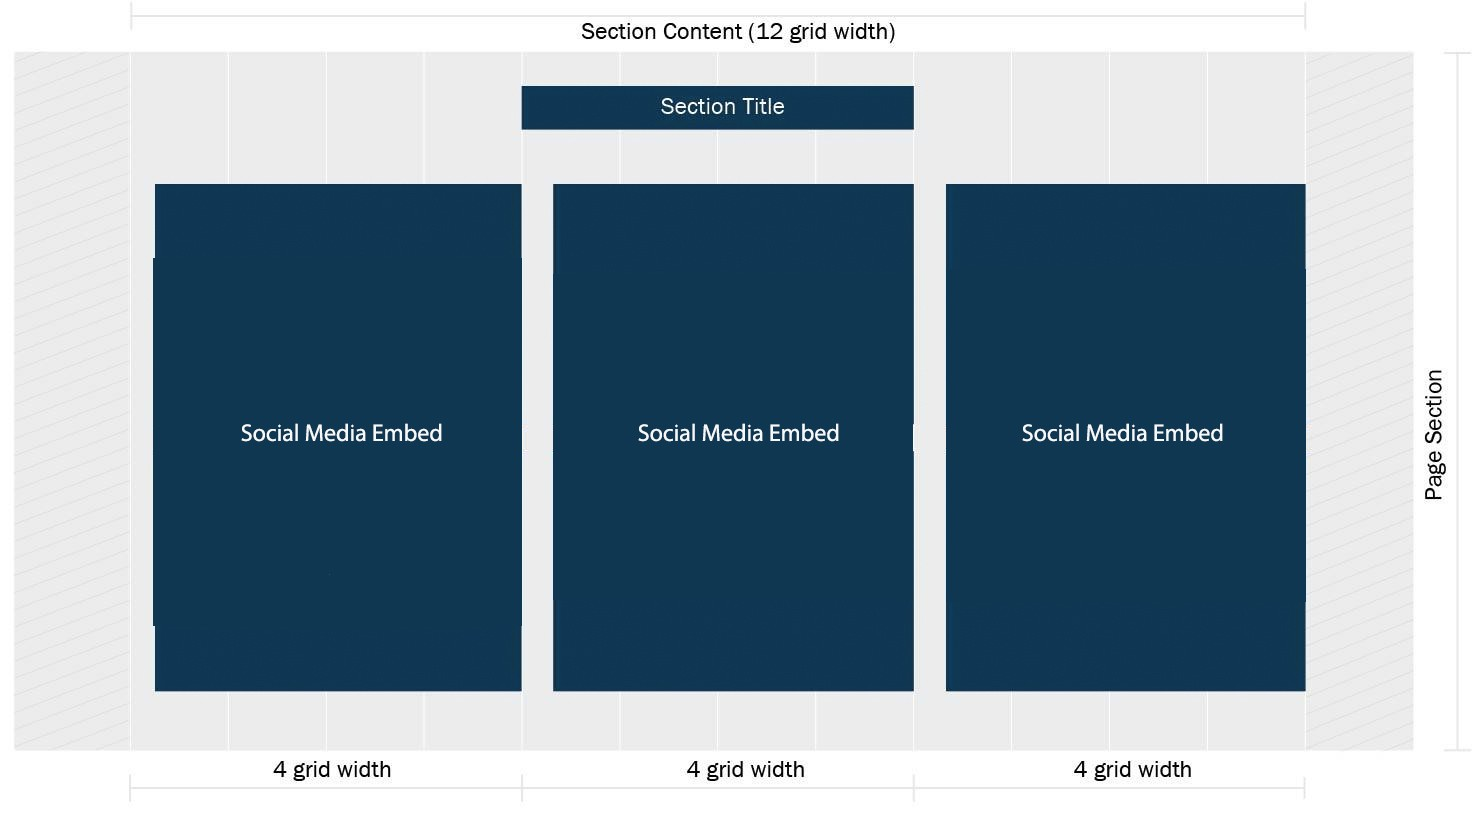 Resulting webpage with 3 Section Contents set to 4 grid units